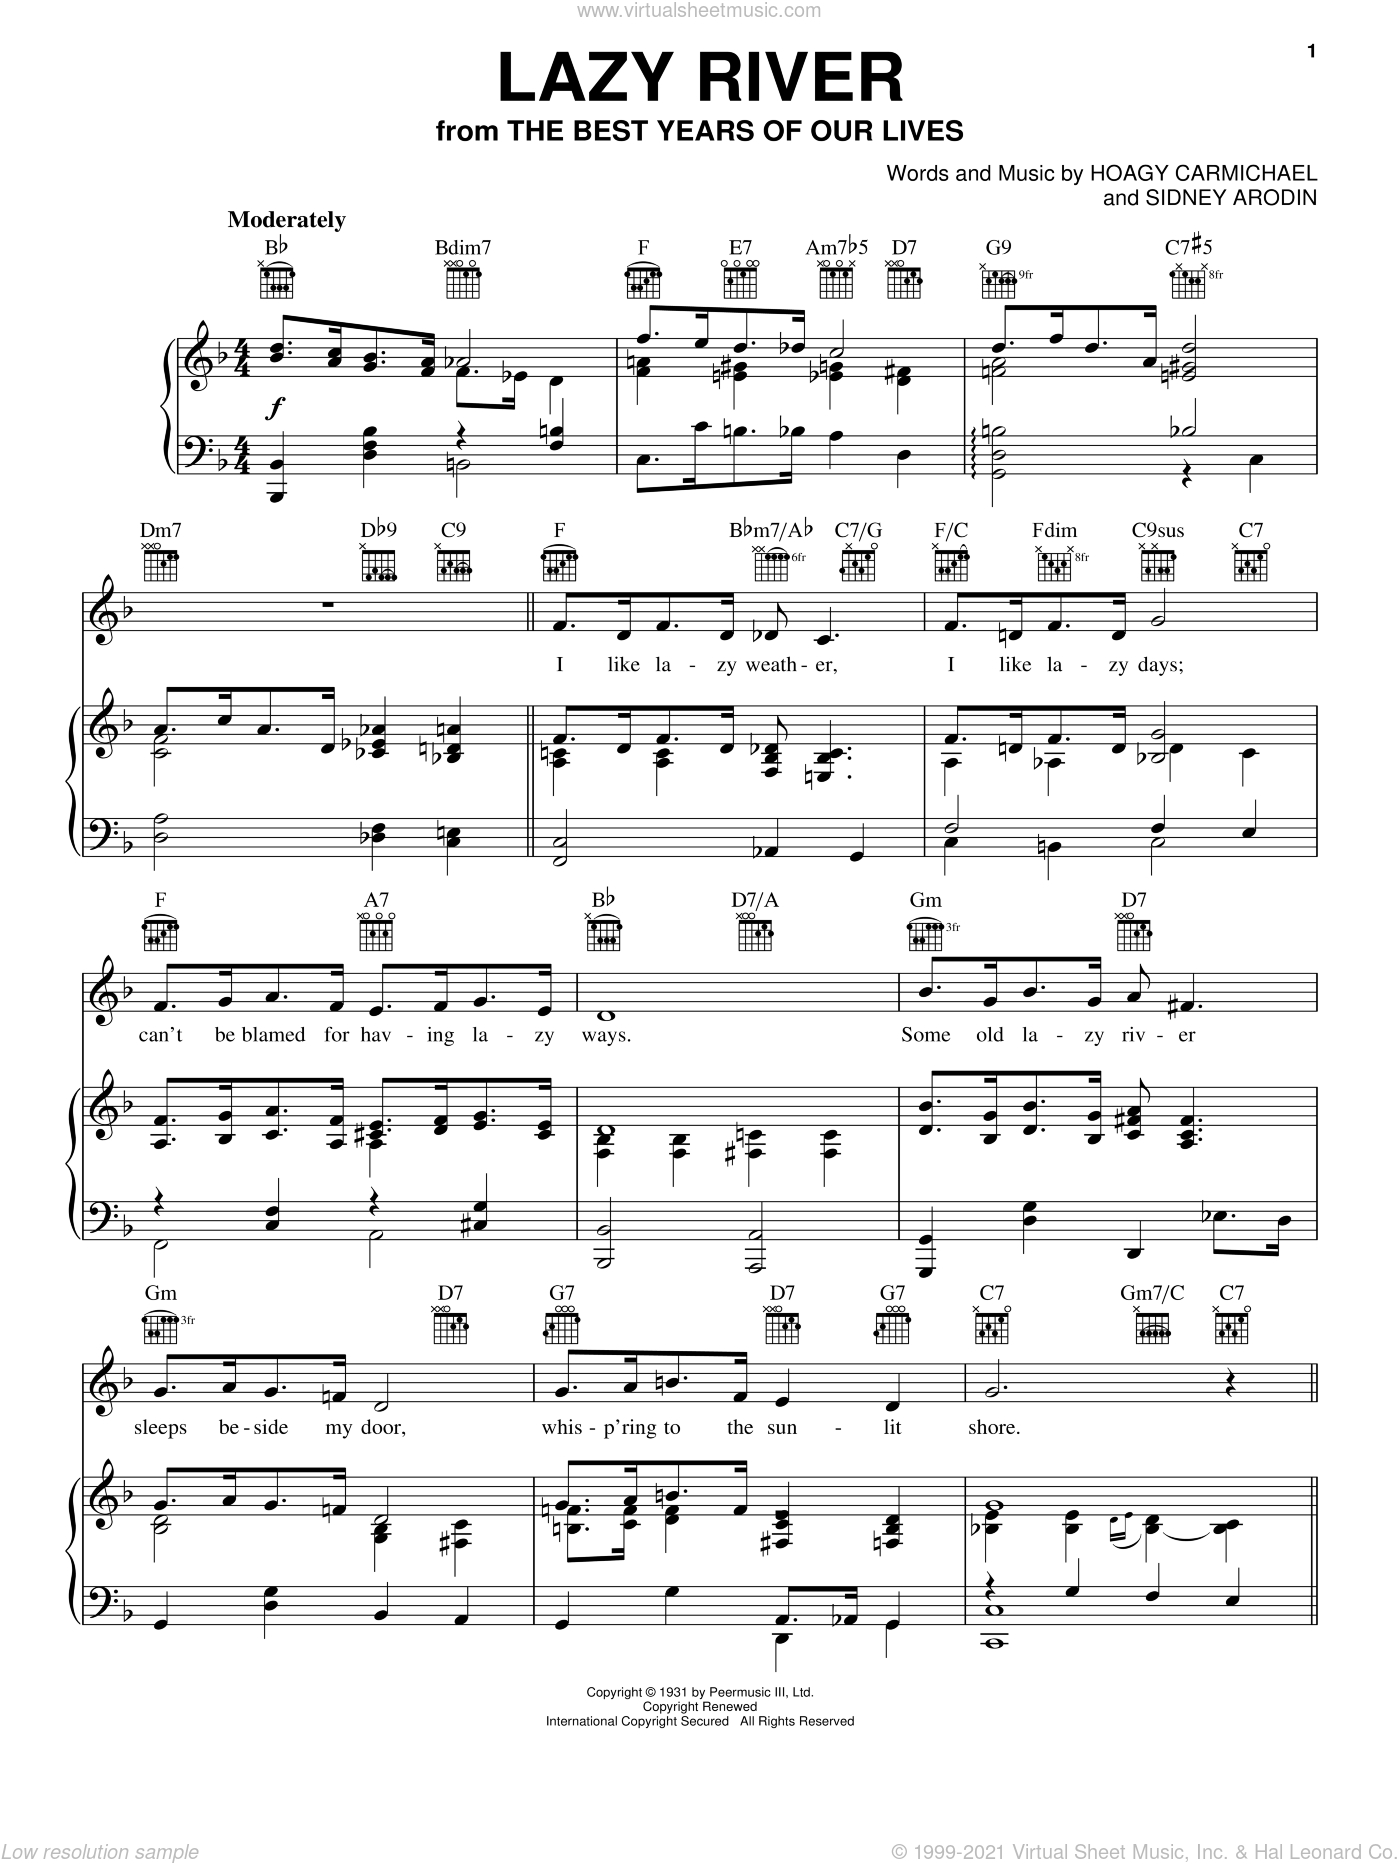 Lazy River sheet music for voice, piano or guitar by Bobby Darin, Hoagy Carmichael and Sidney Arodin, intermediate skill level